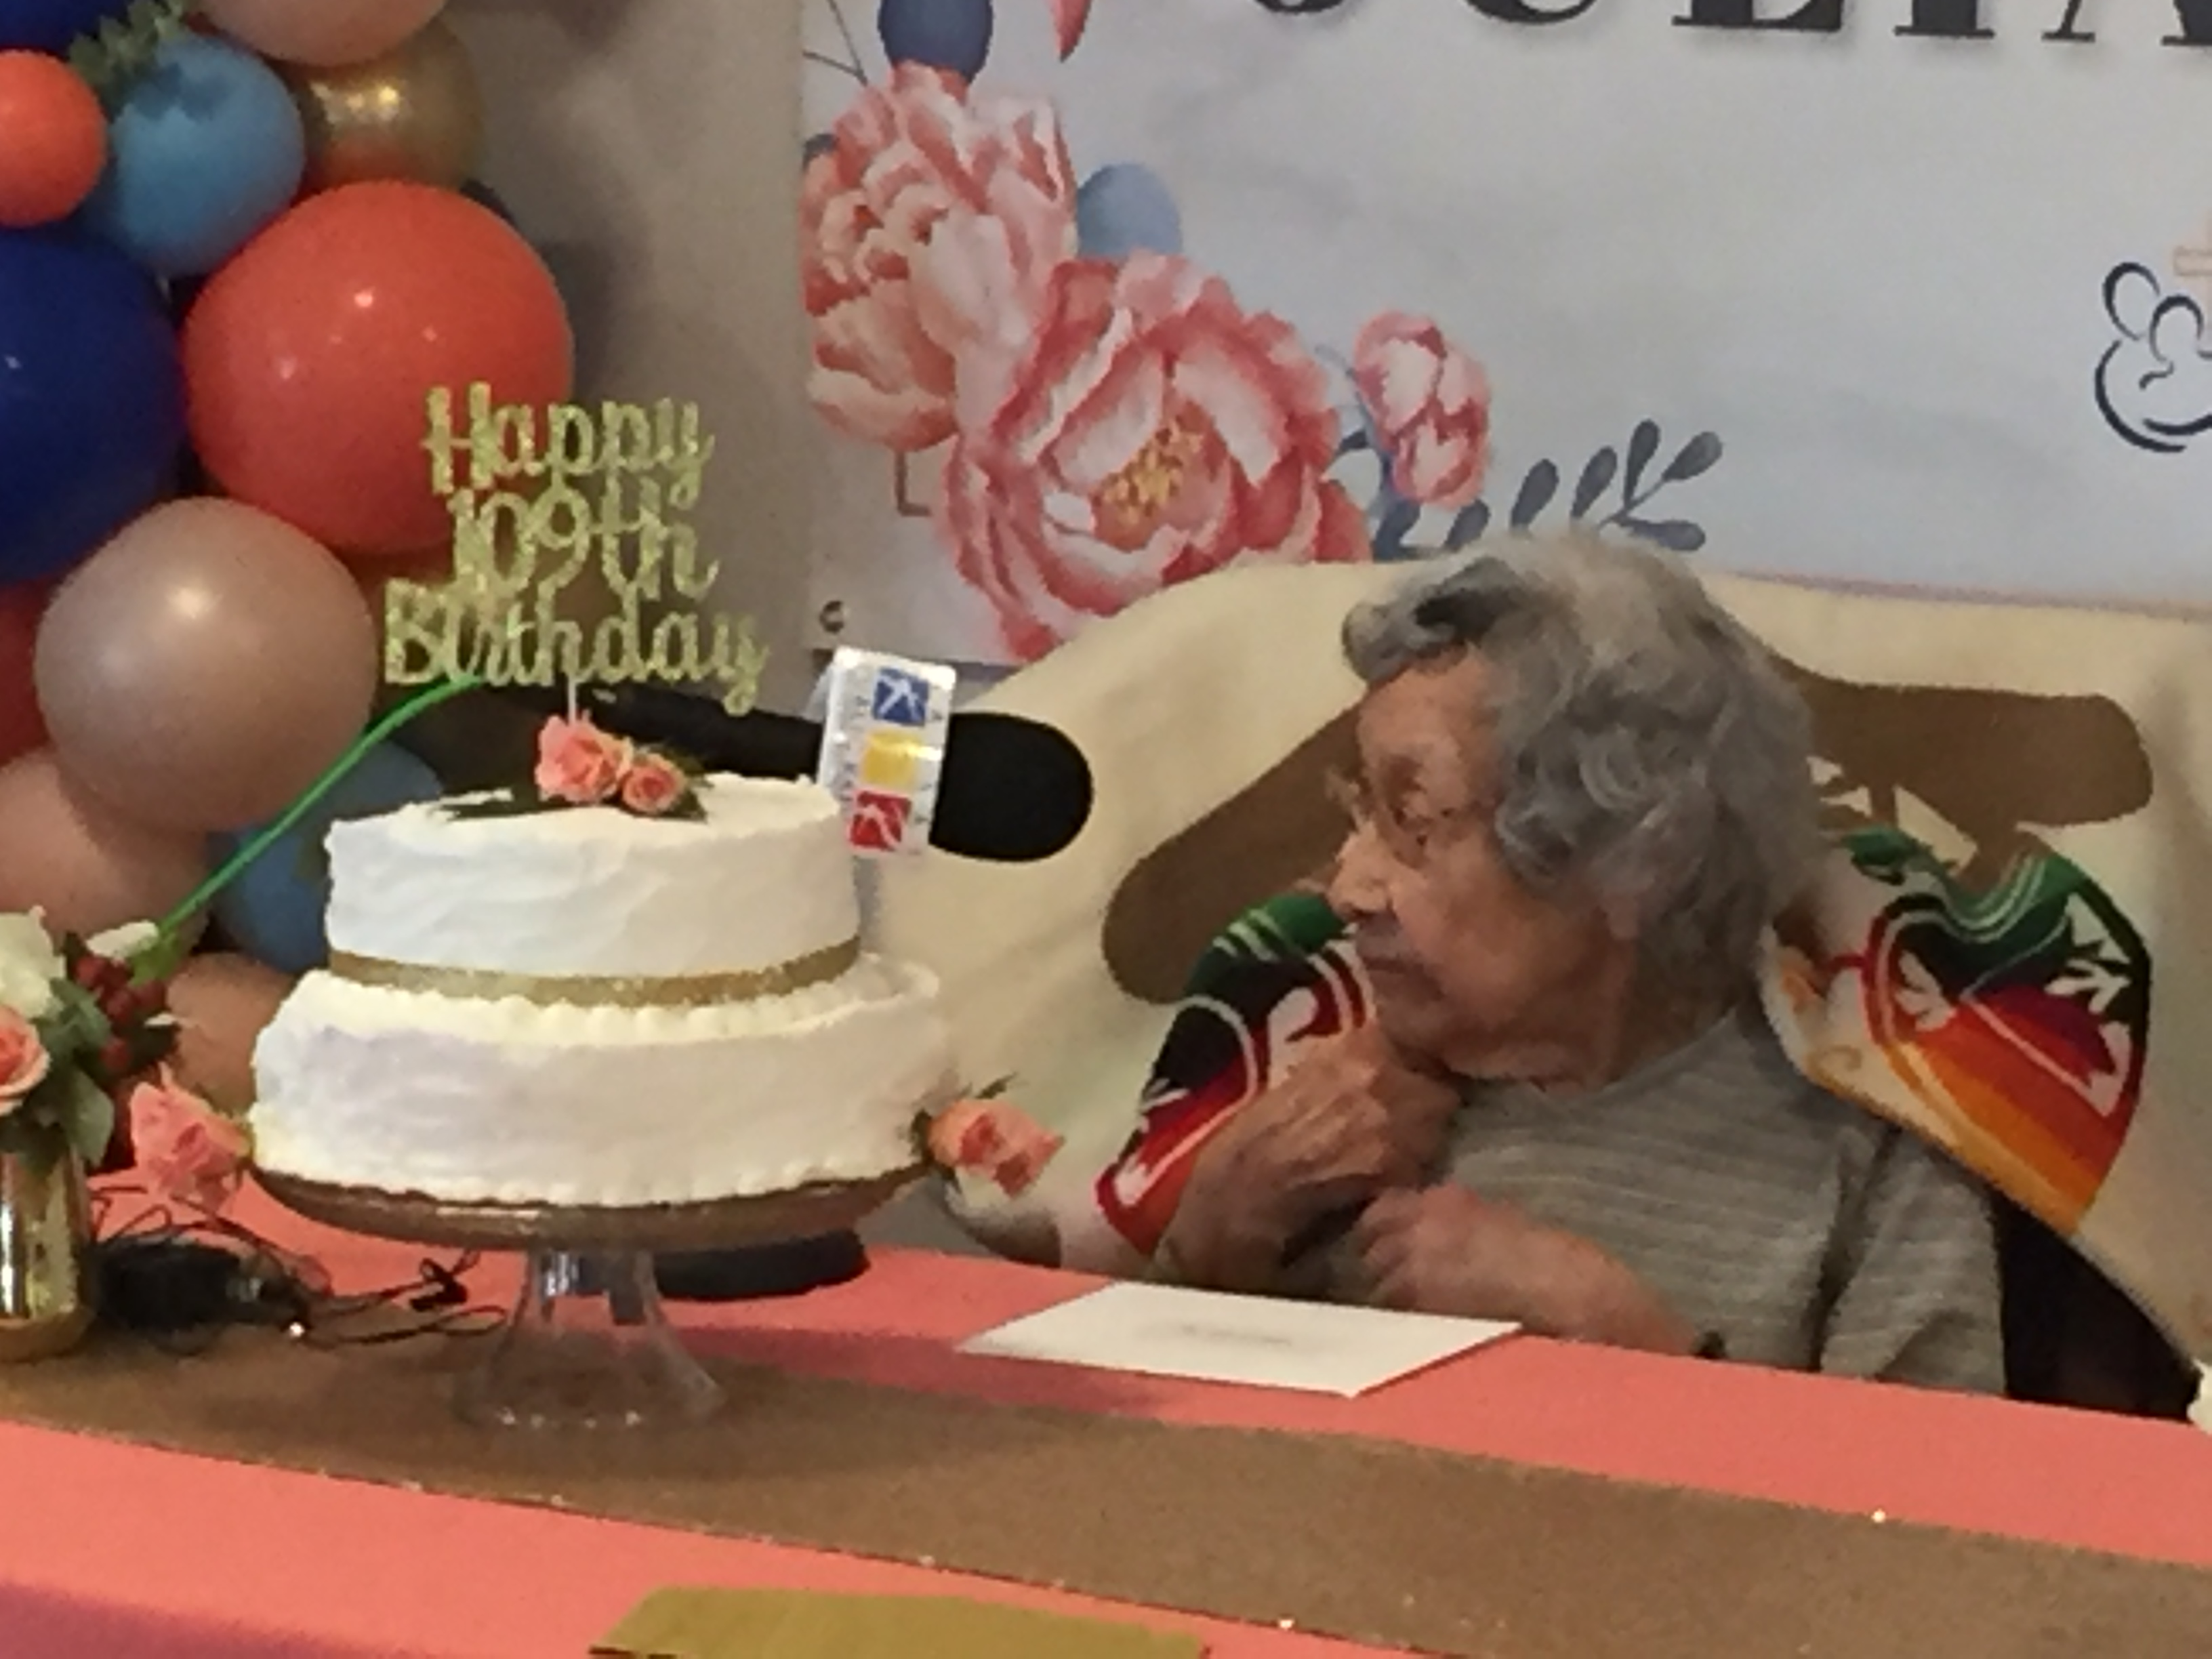 Julia Kabance's 109th birthday bash in Wamego, Kansas. (Photo by J. Schafer)